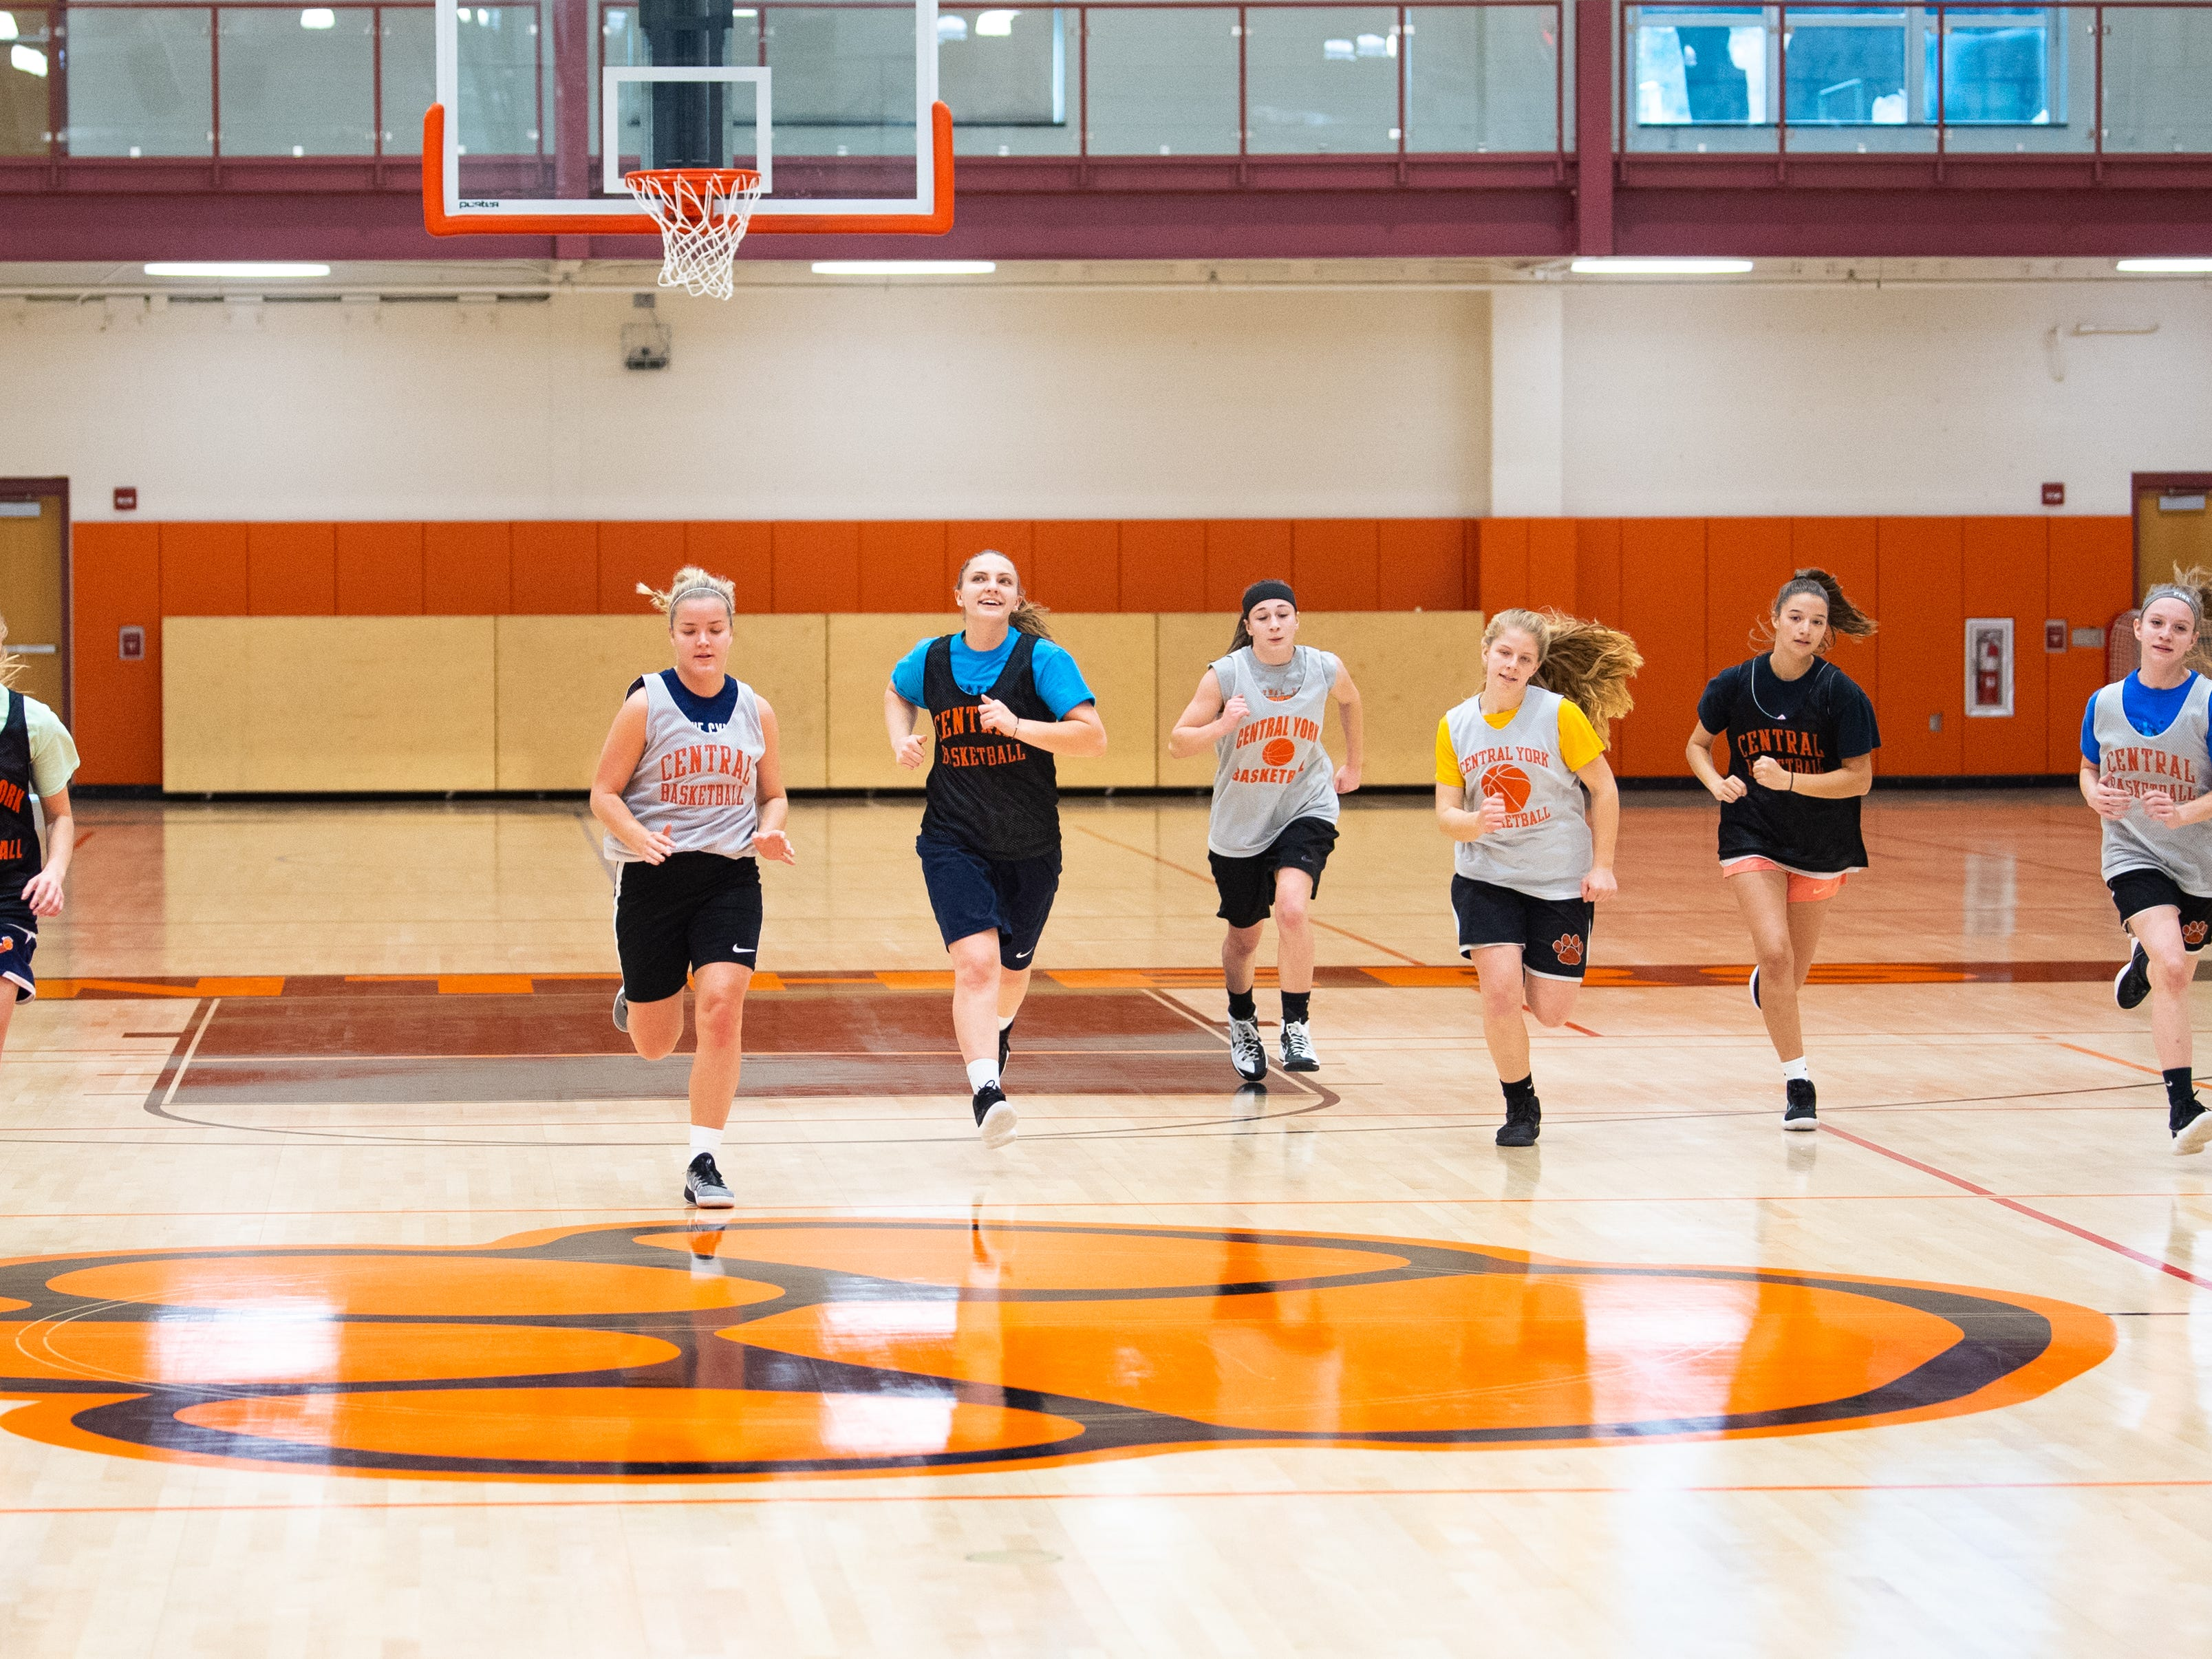 Central York girls' basketball players run during practice, Wednesday, November 21, 2018.